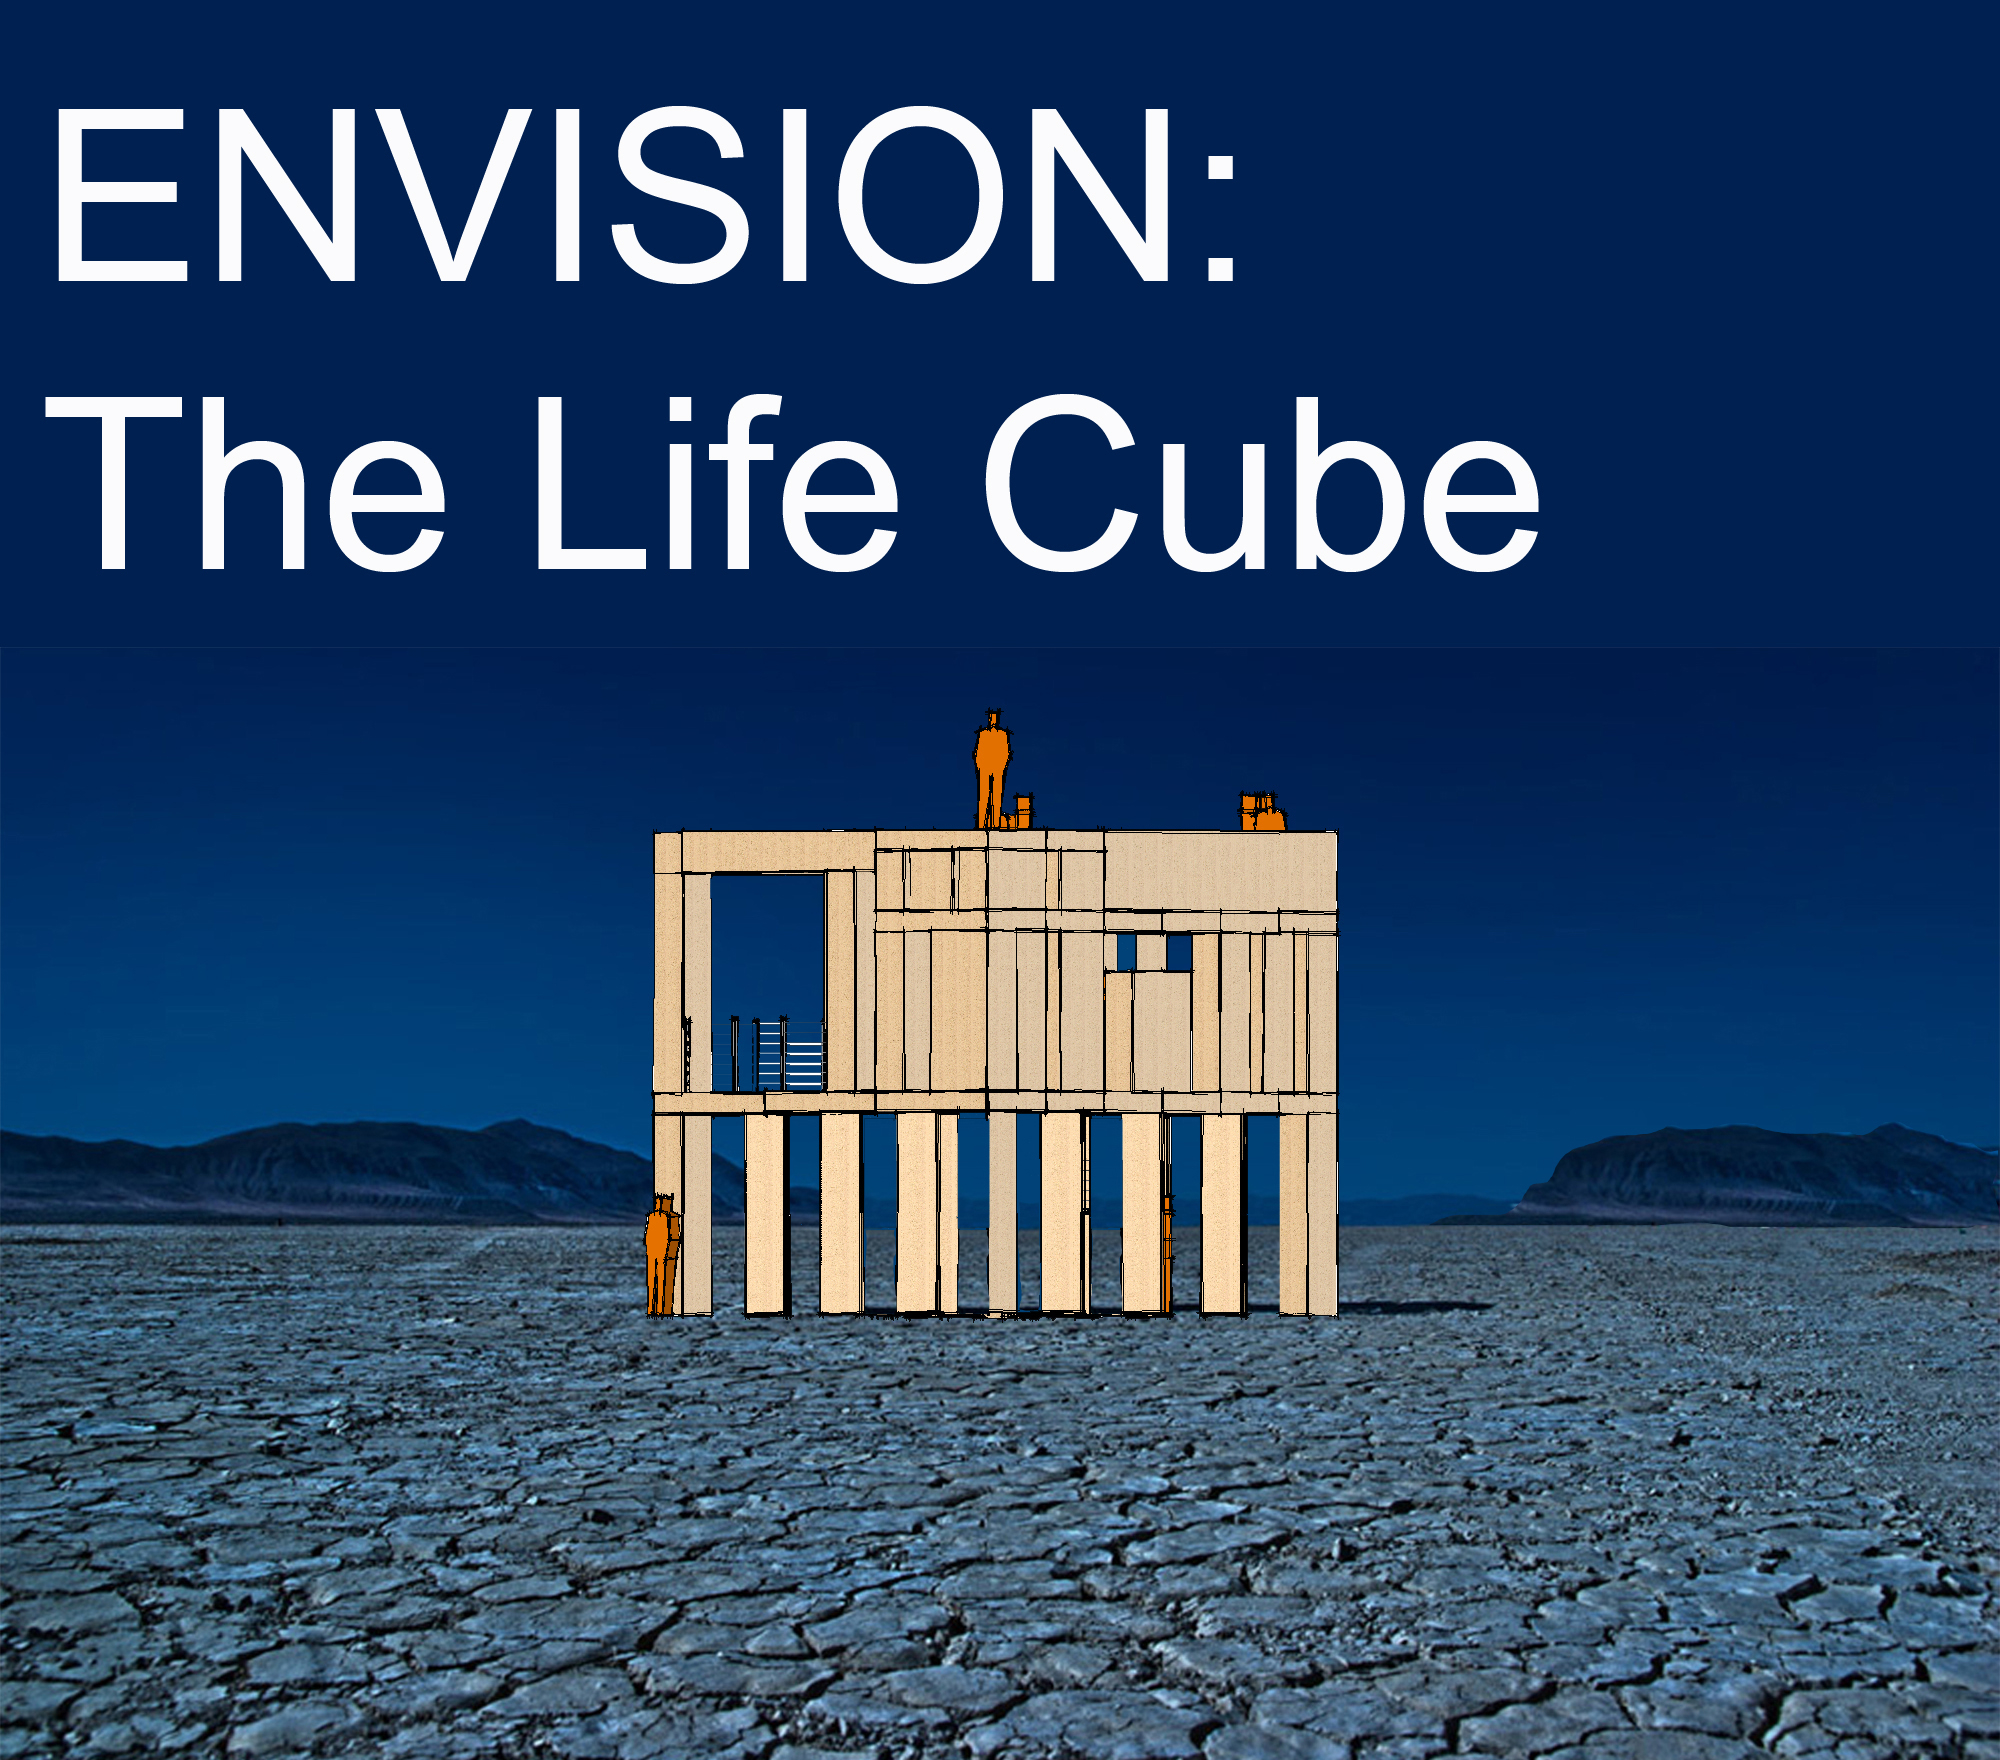 envision the life cube color rendering video link the life cube project. Black Bedroom Furniture Sets. Home Design Ideas